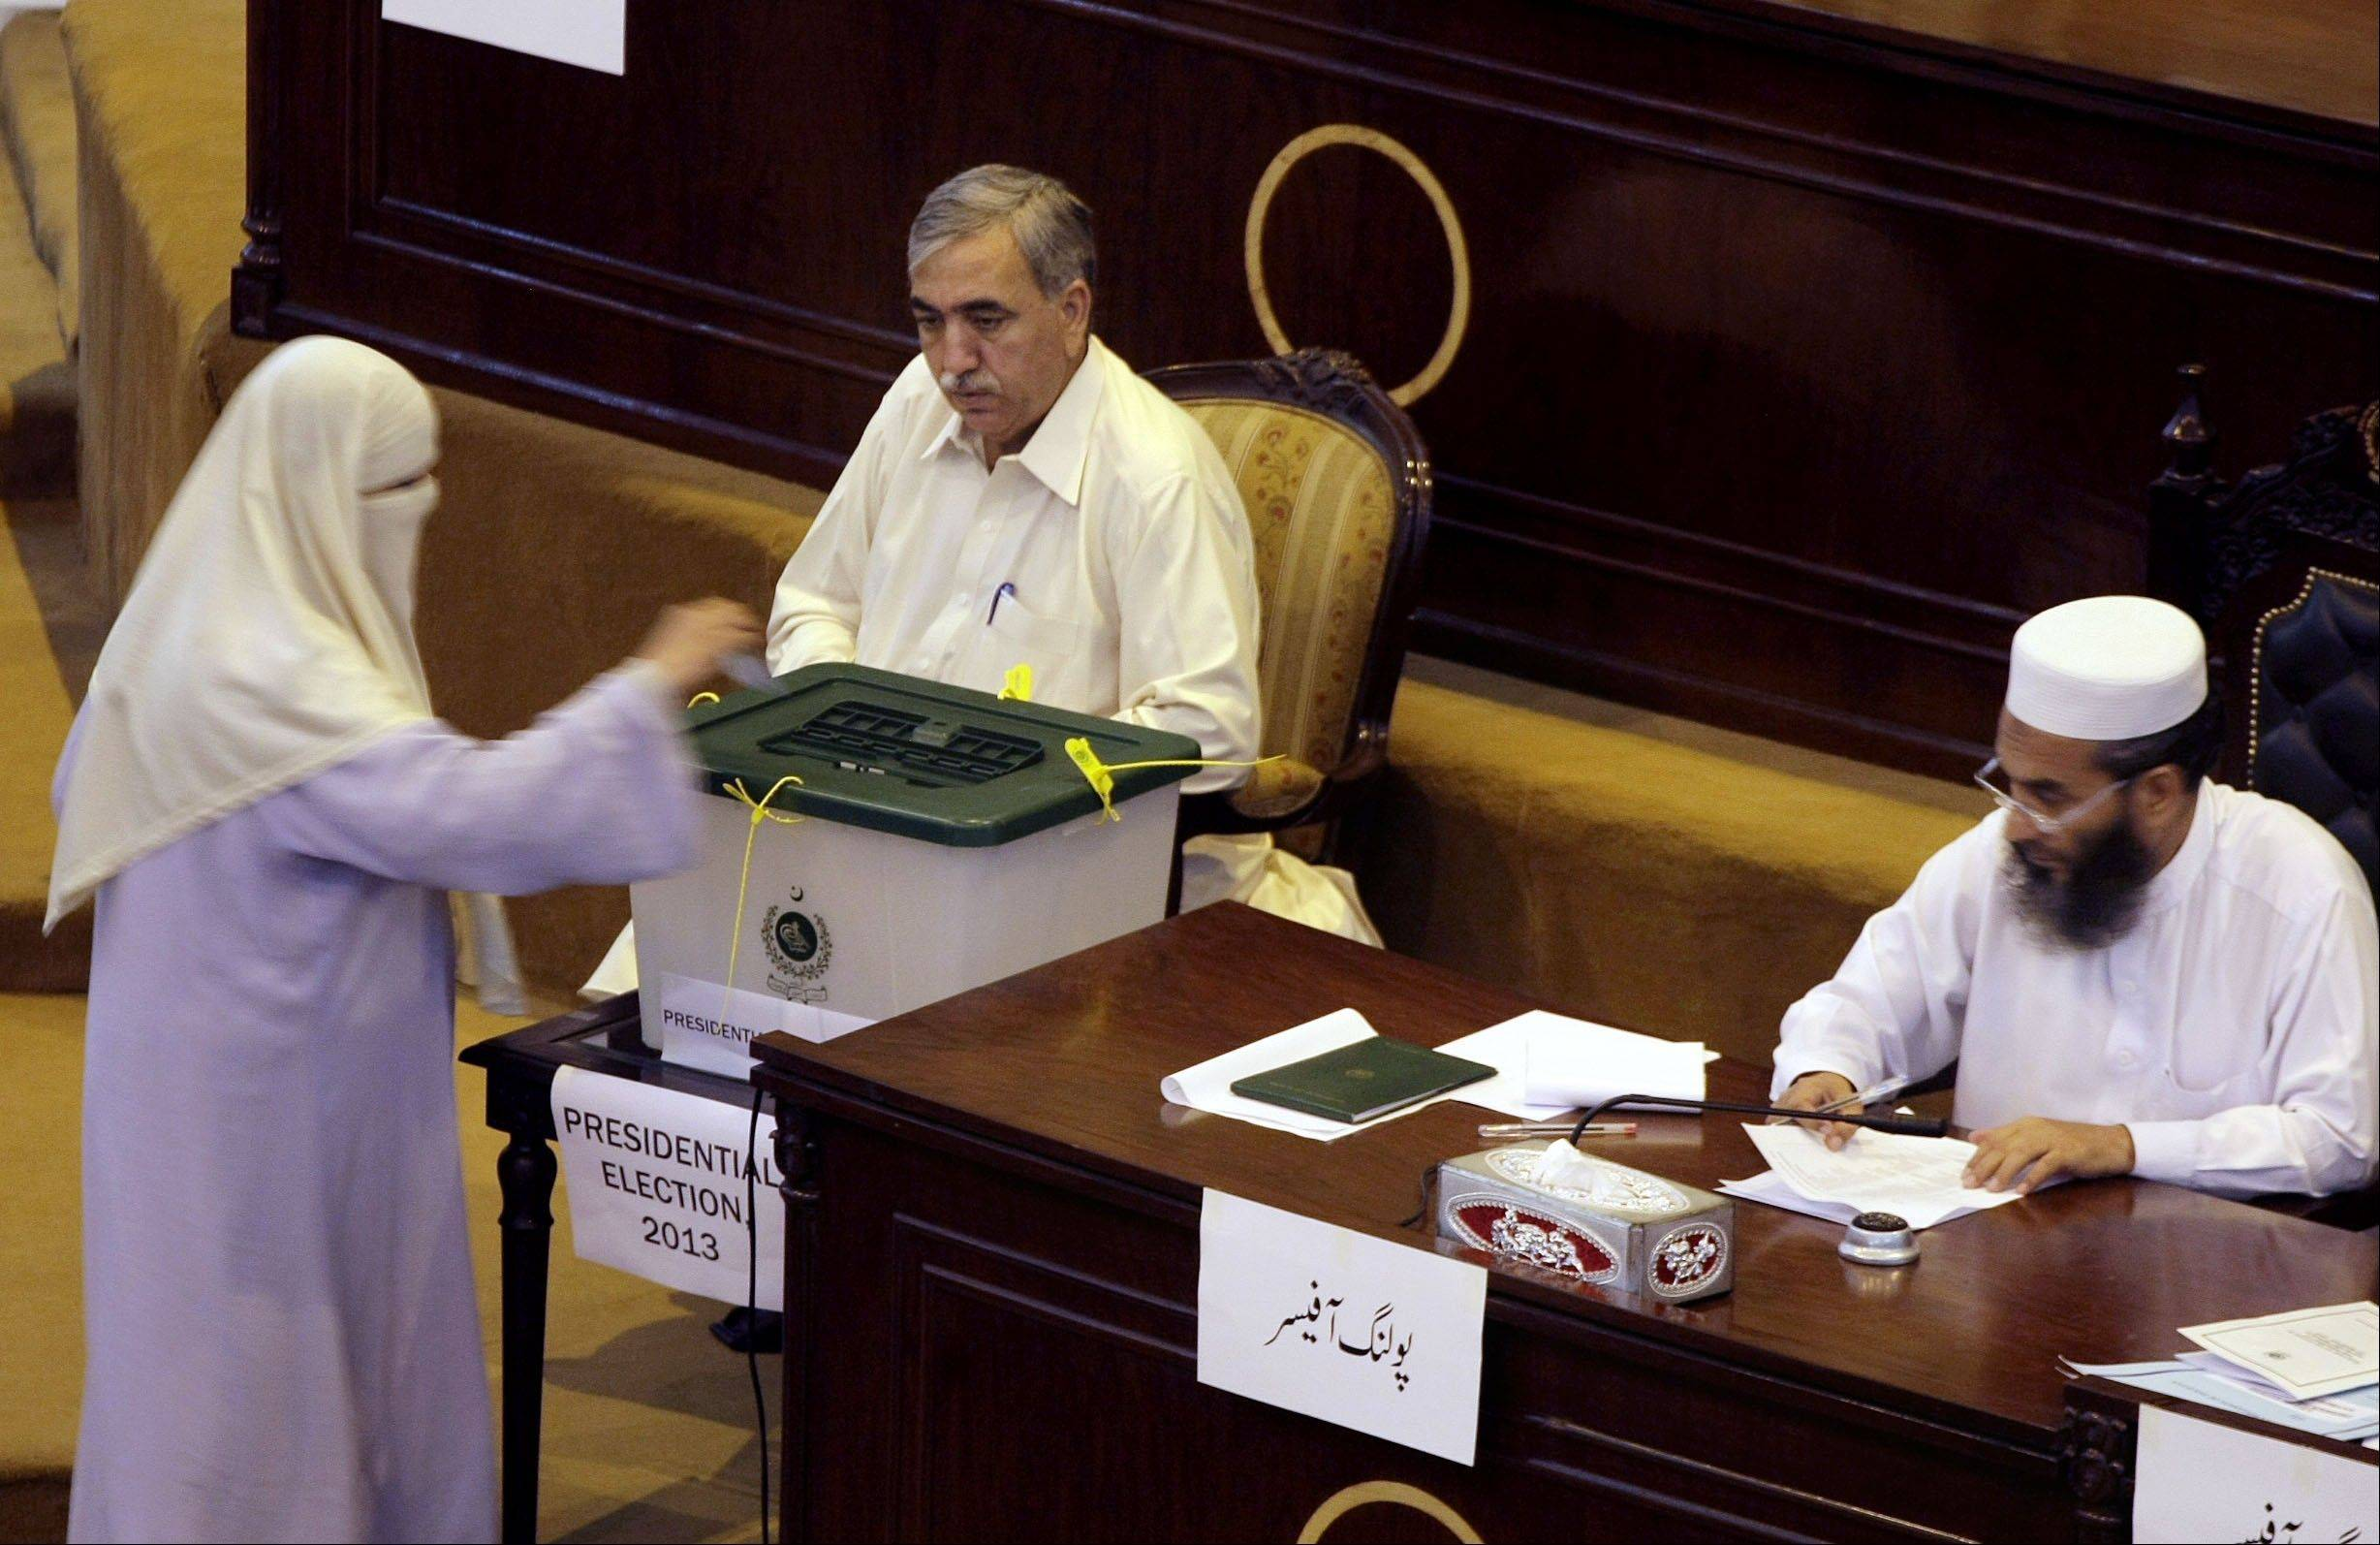 A Pakistani lawmaker casts her vote for the presidential election at the Provincial assembly in Peshawar, Pakistan, Tuesday, July 30, 2013. Pakistani lawmakers elected Mamnoon Hussain, a textile businessman, as the country's next president.